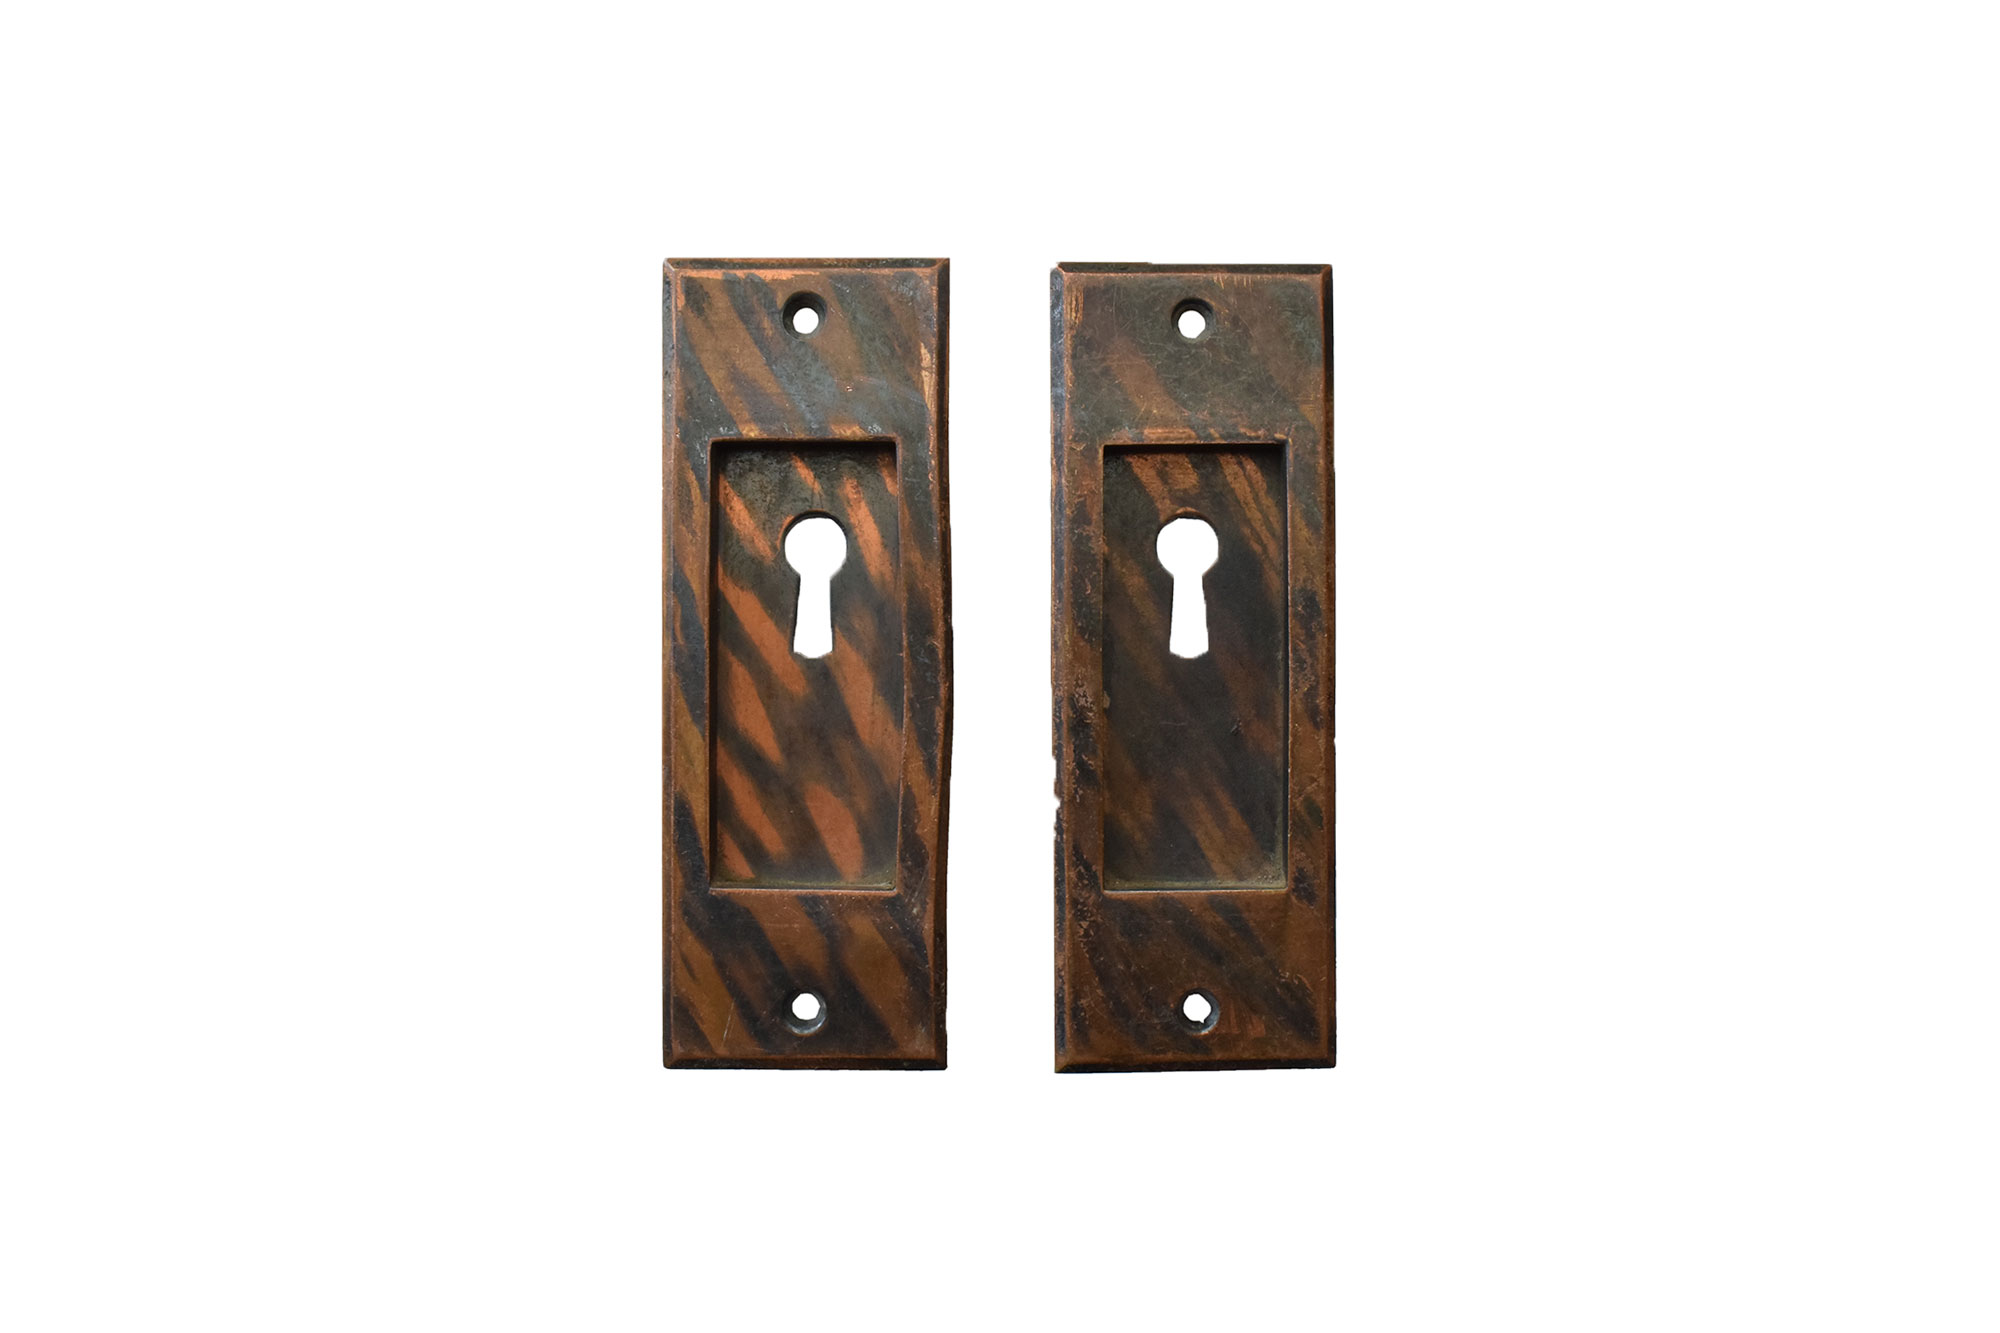 GILT AND SATIN POCKET DOOR PULLS WITH KEYHOLE AA# H20104   1 set available $75.00 for set